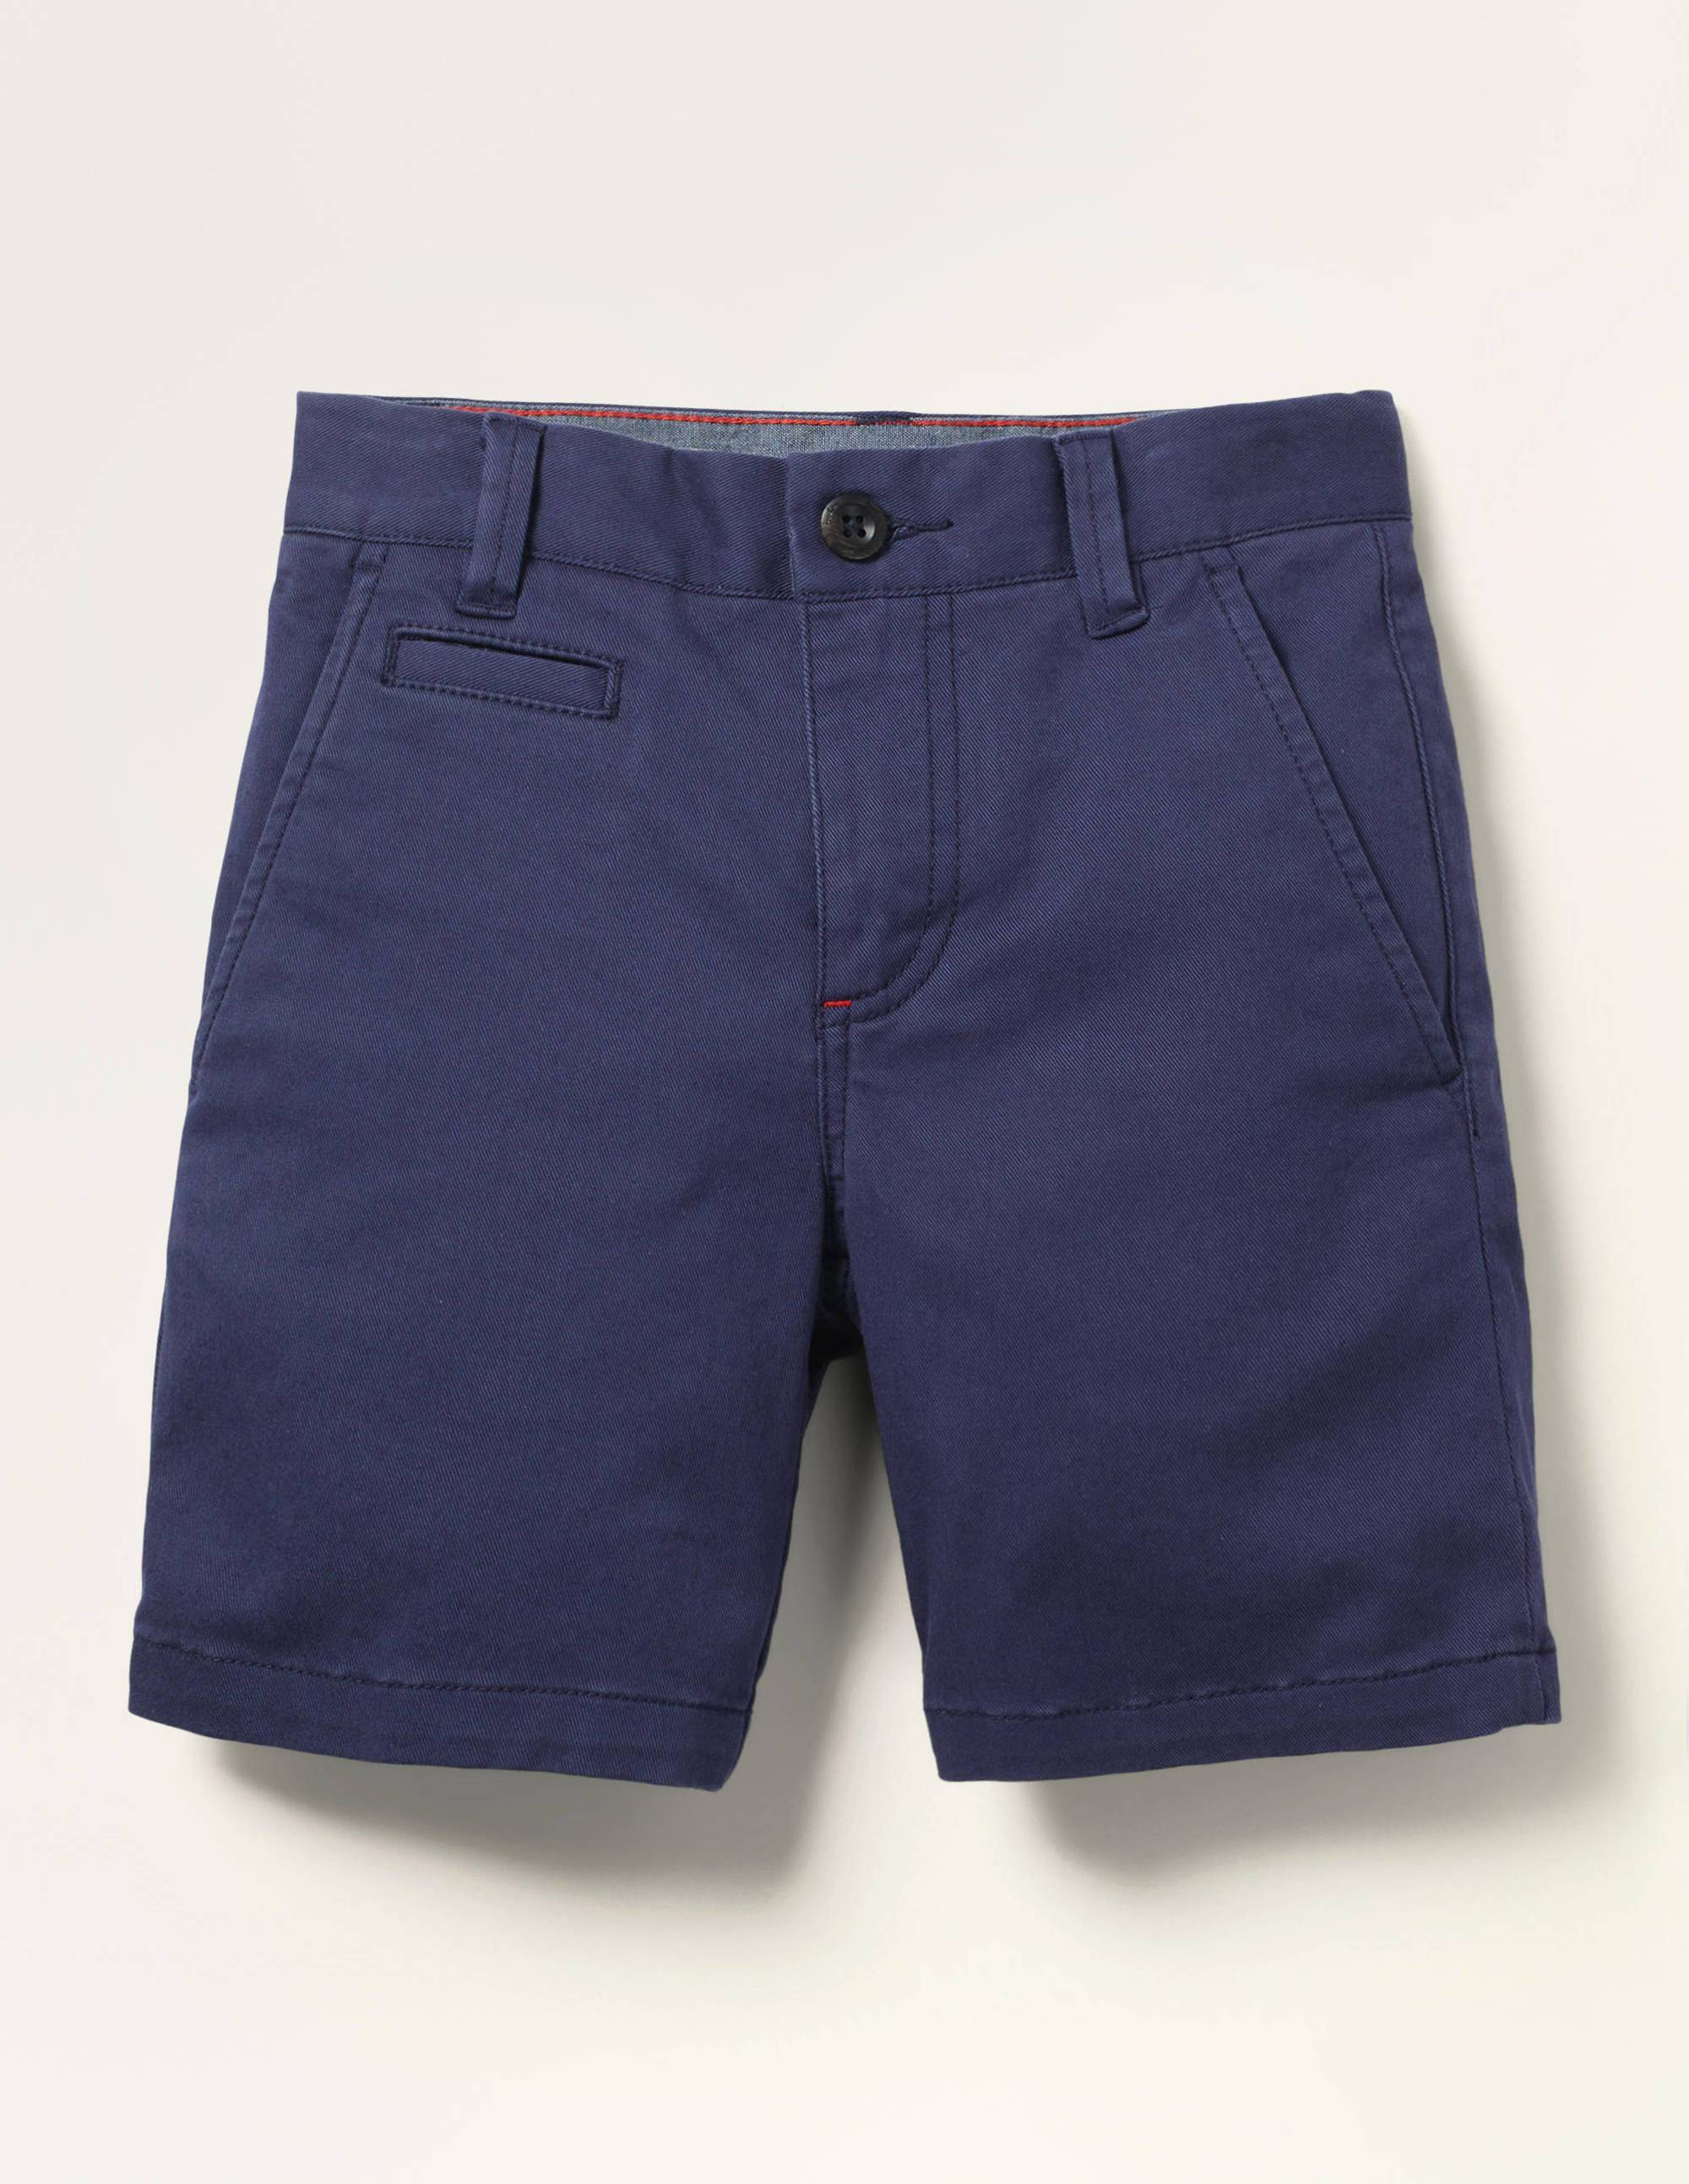 Mini Short chino NAV Femme Boden, Blue - 14a